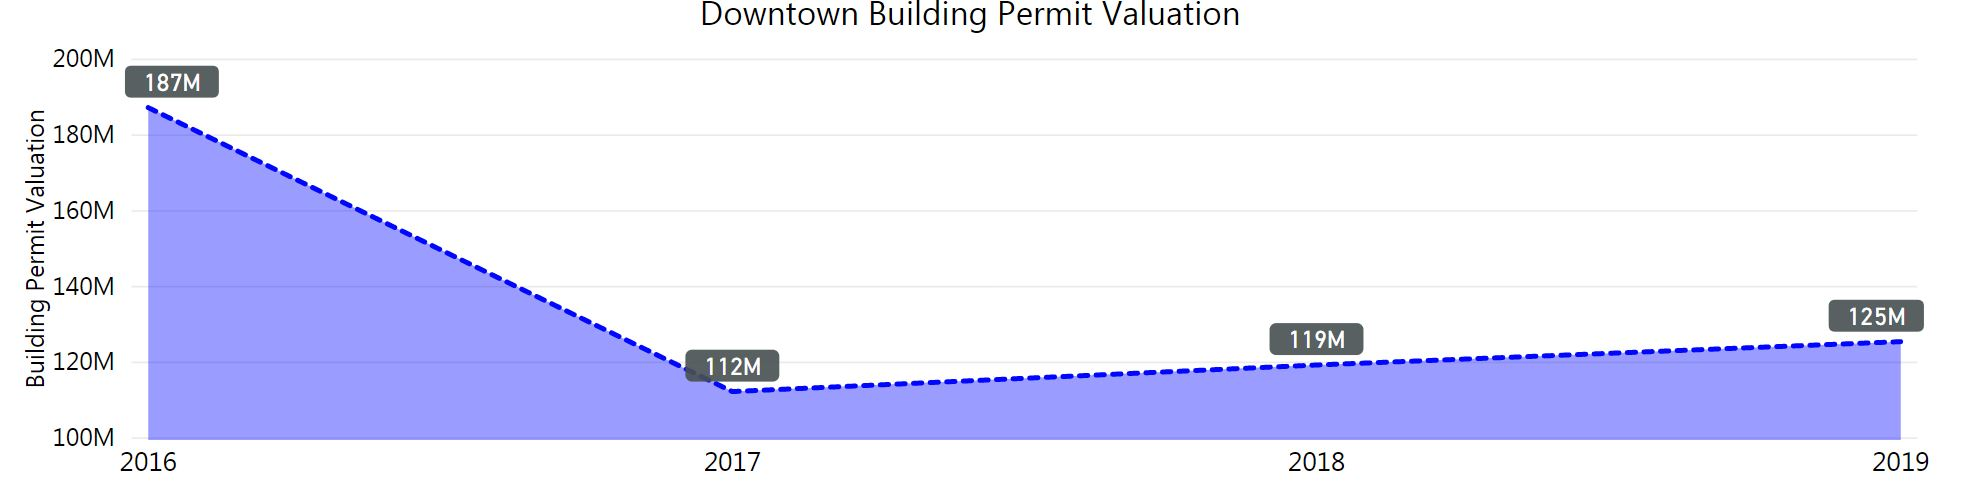 graph of downtown building permit valuation. High in 2016 at 187 million. Low in 2017 at 112 million. 2019 is 125 million.